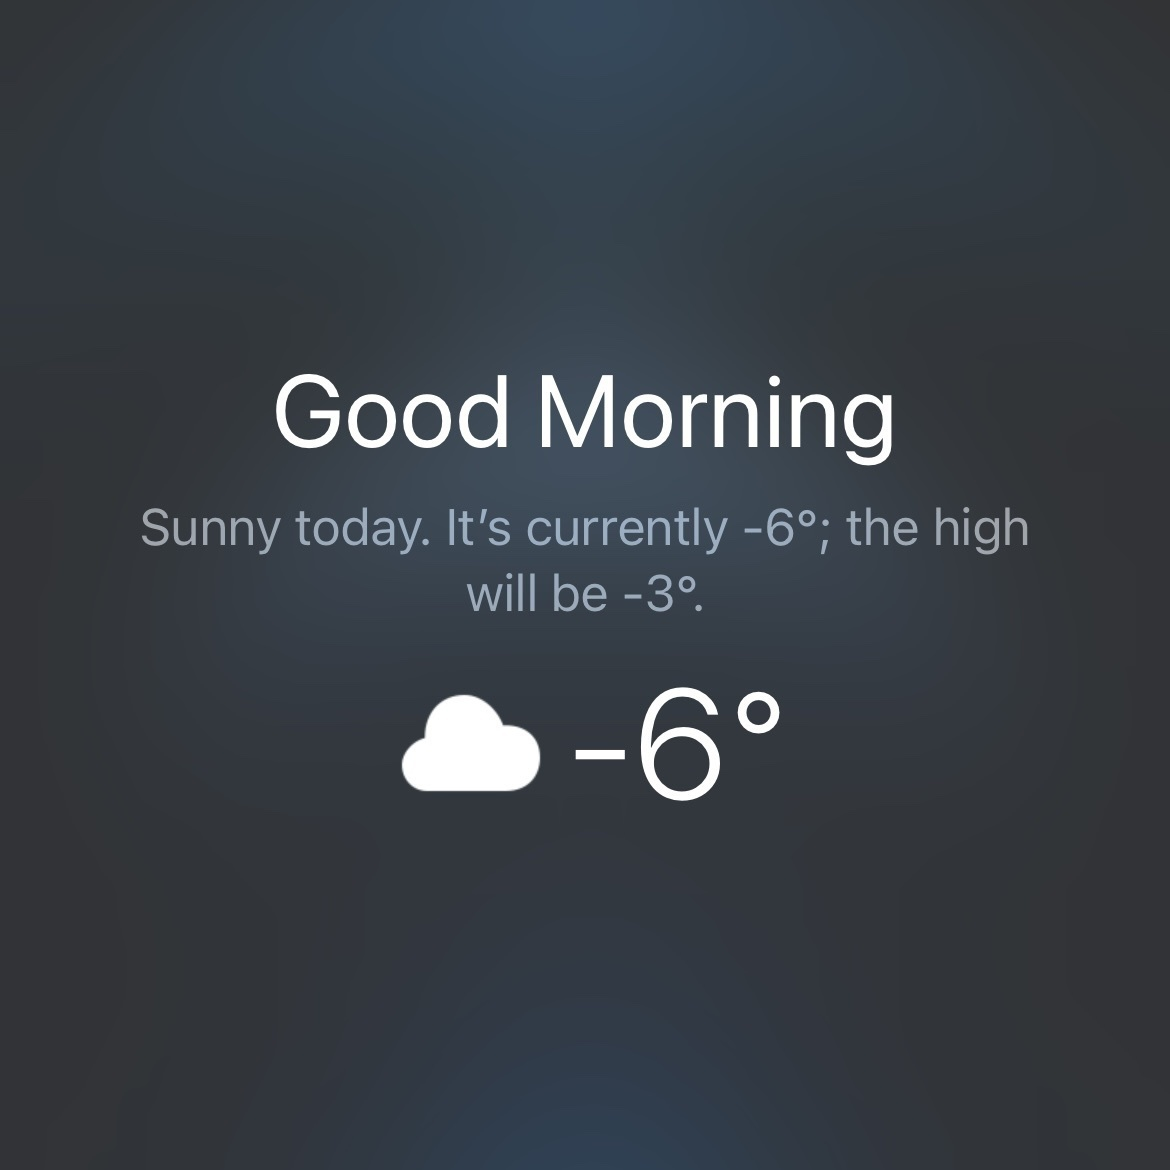 """A screenshot of a portion of an iPhone lock screen saying """"Good Morning"""" and indicating a current temperature of -6C."""